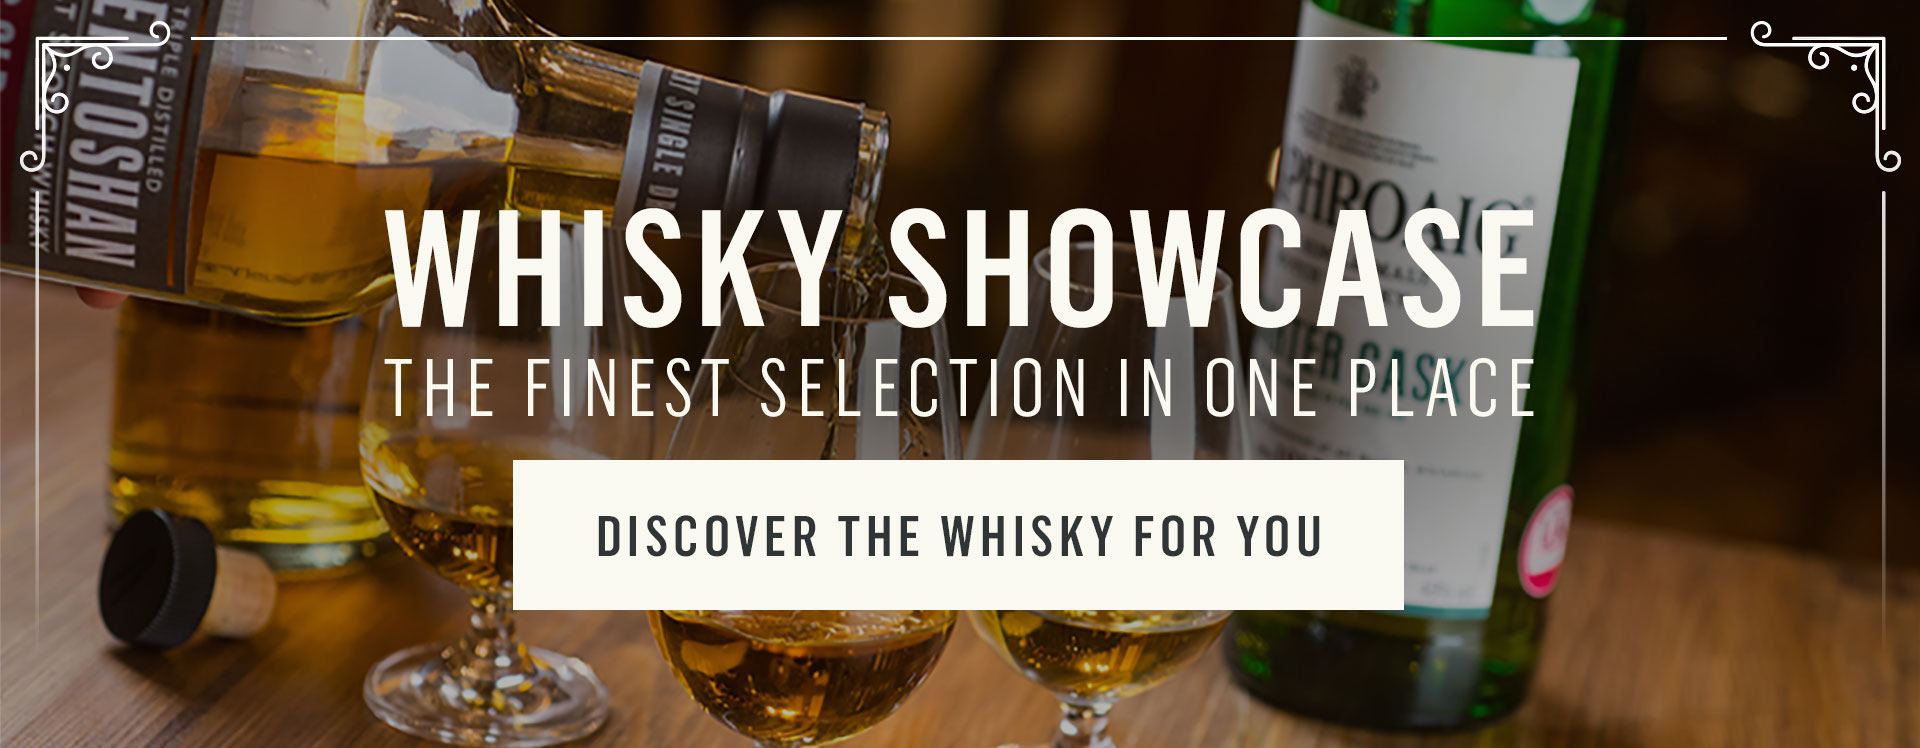 Whisky Showcase at The Eagle and Child in Oxford